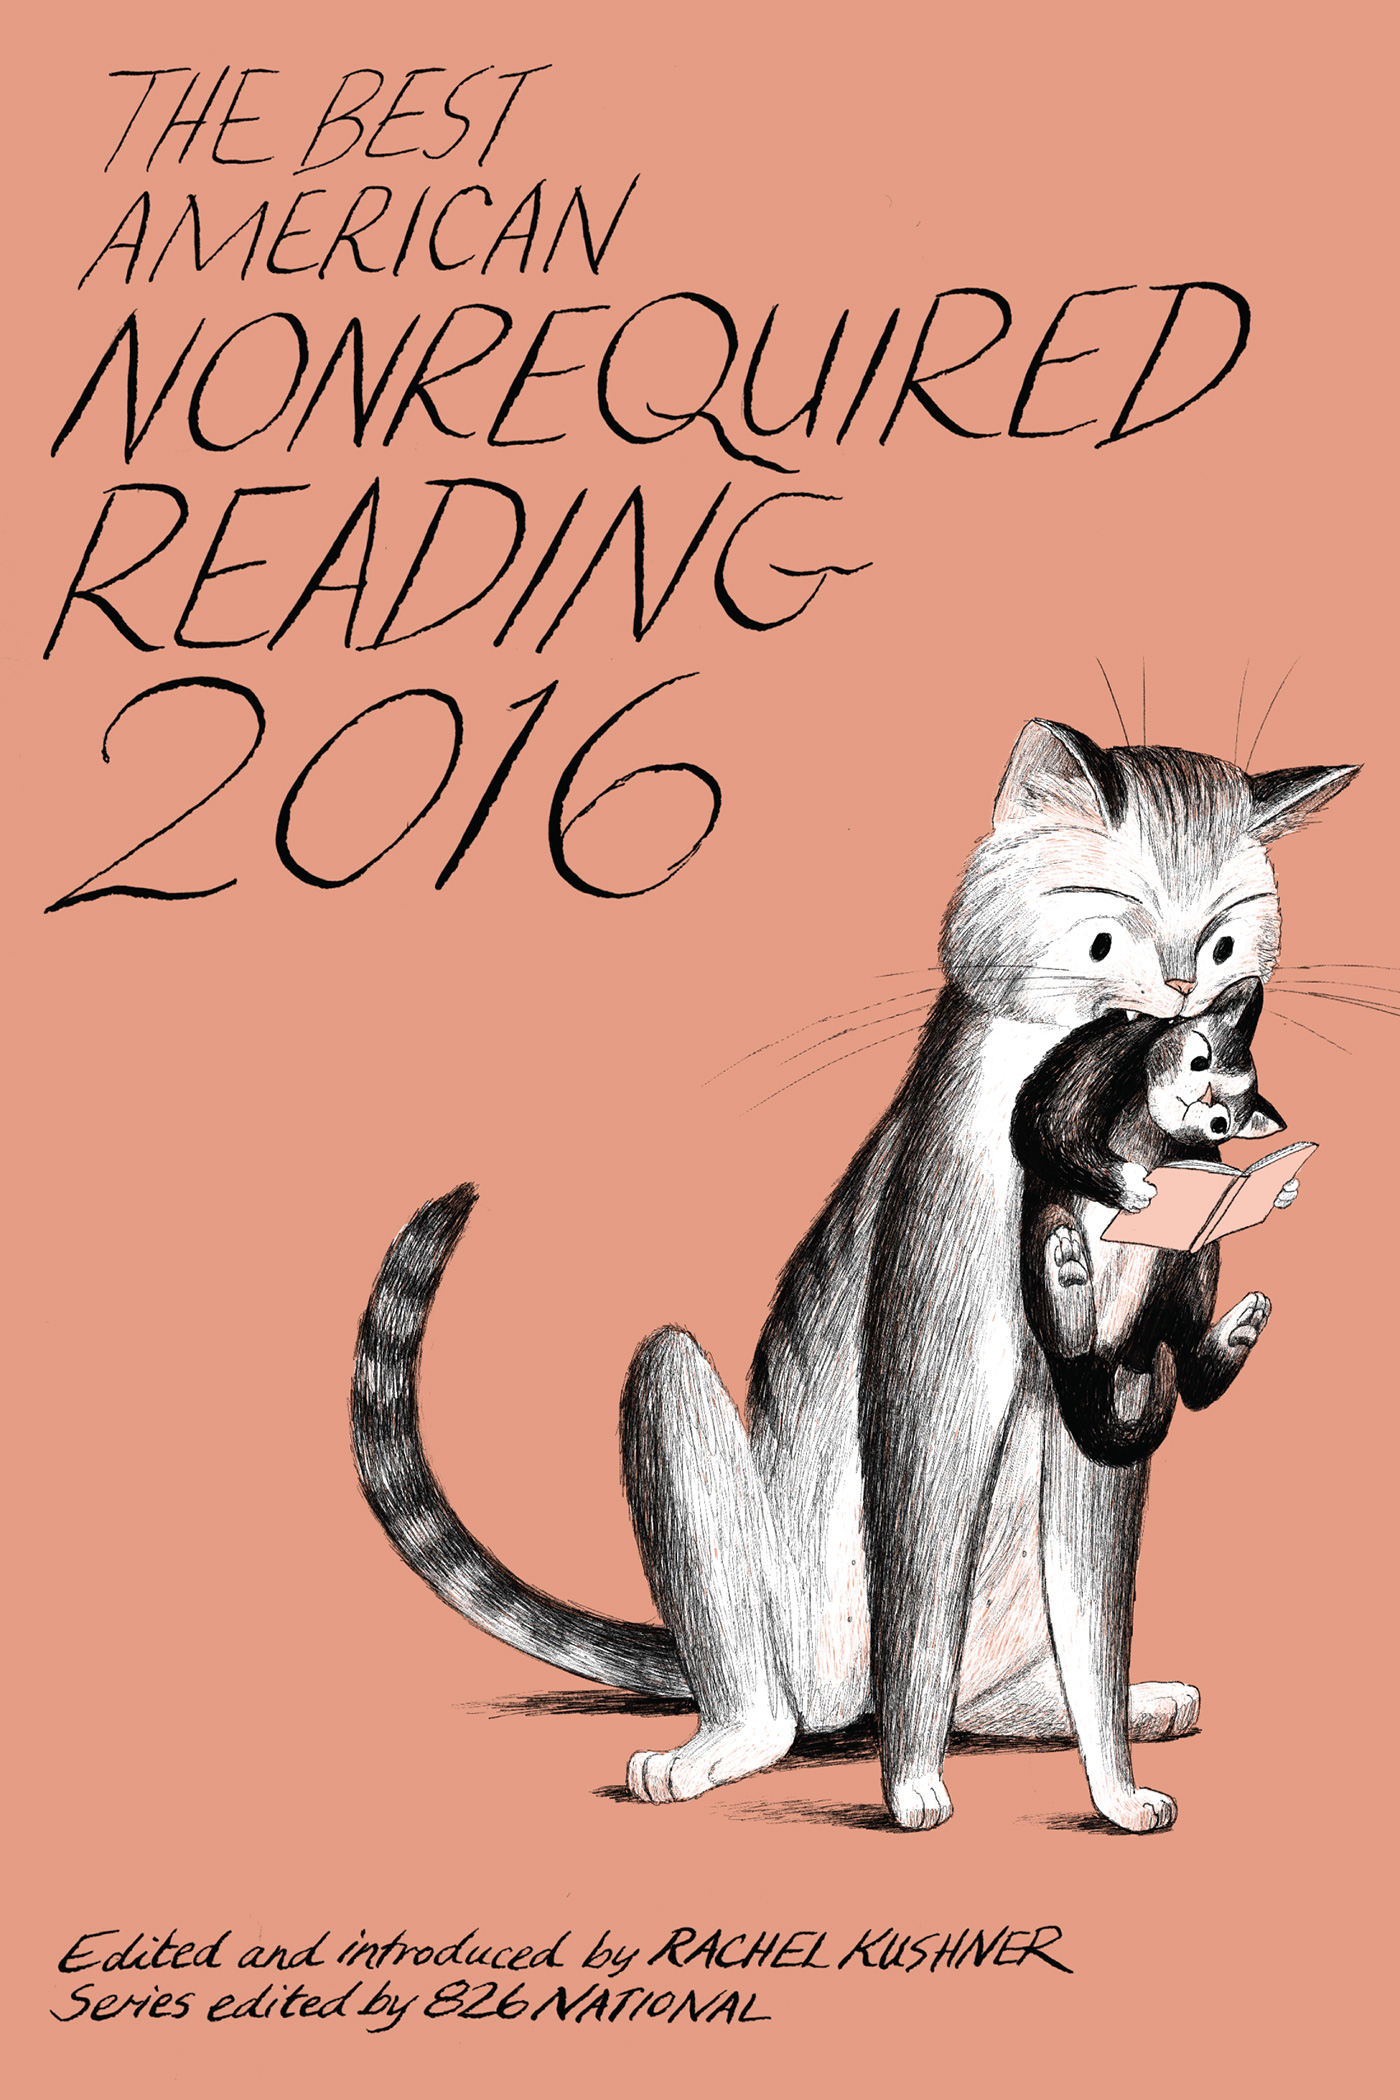 The Best American Nonrequired Reading 2016-9780544812116